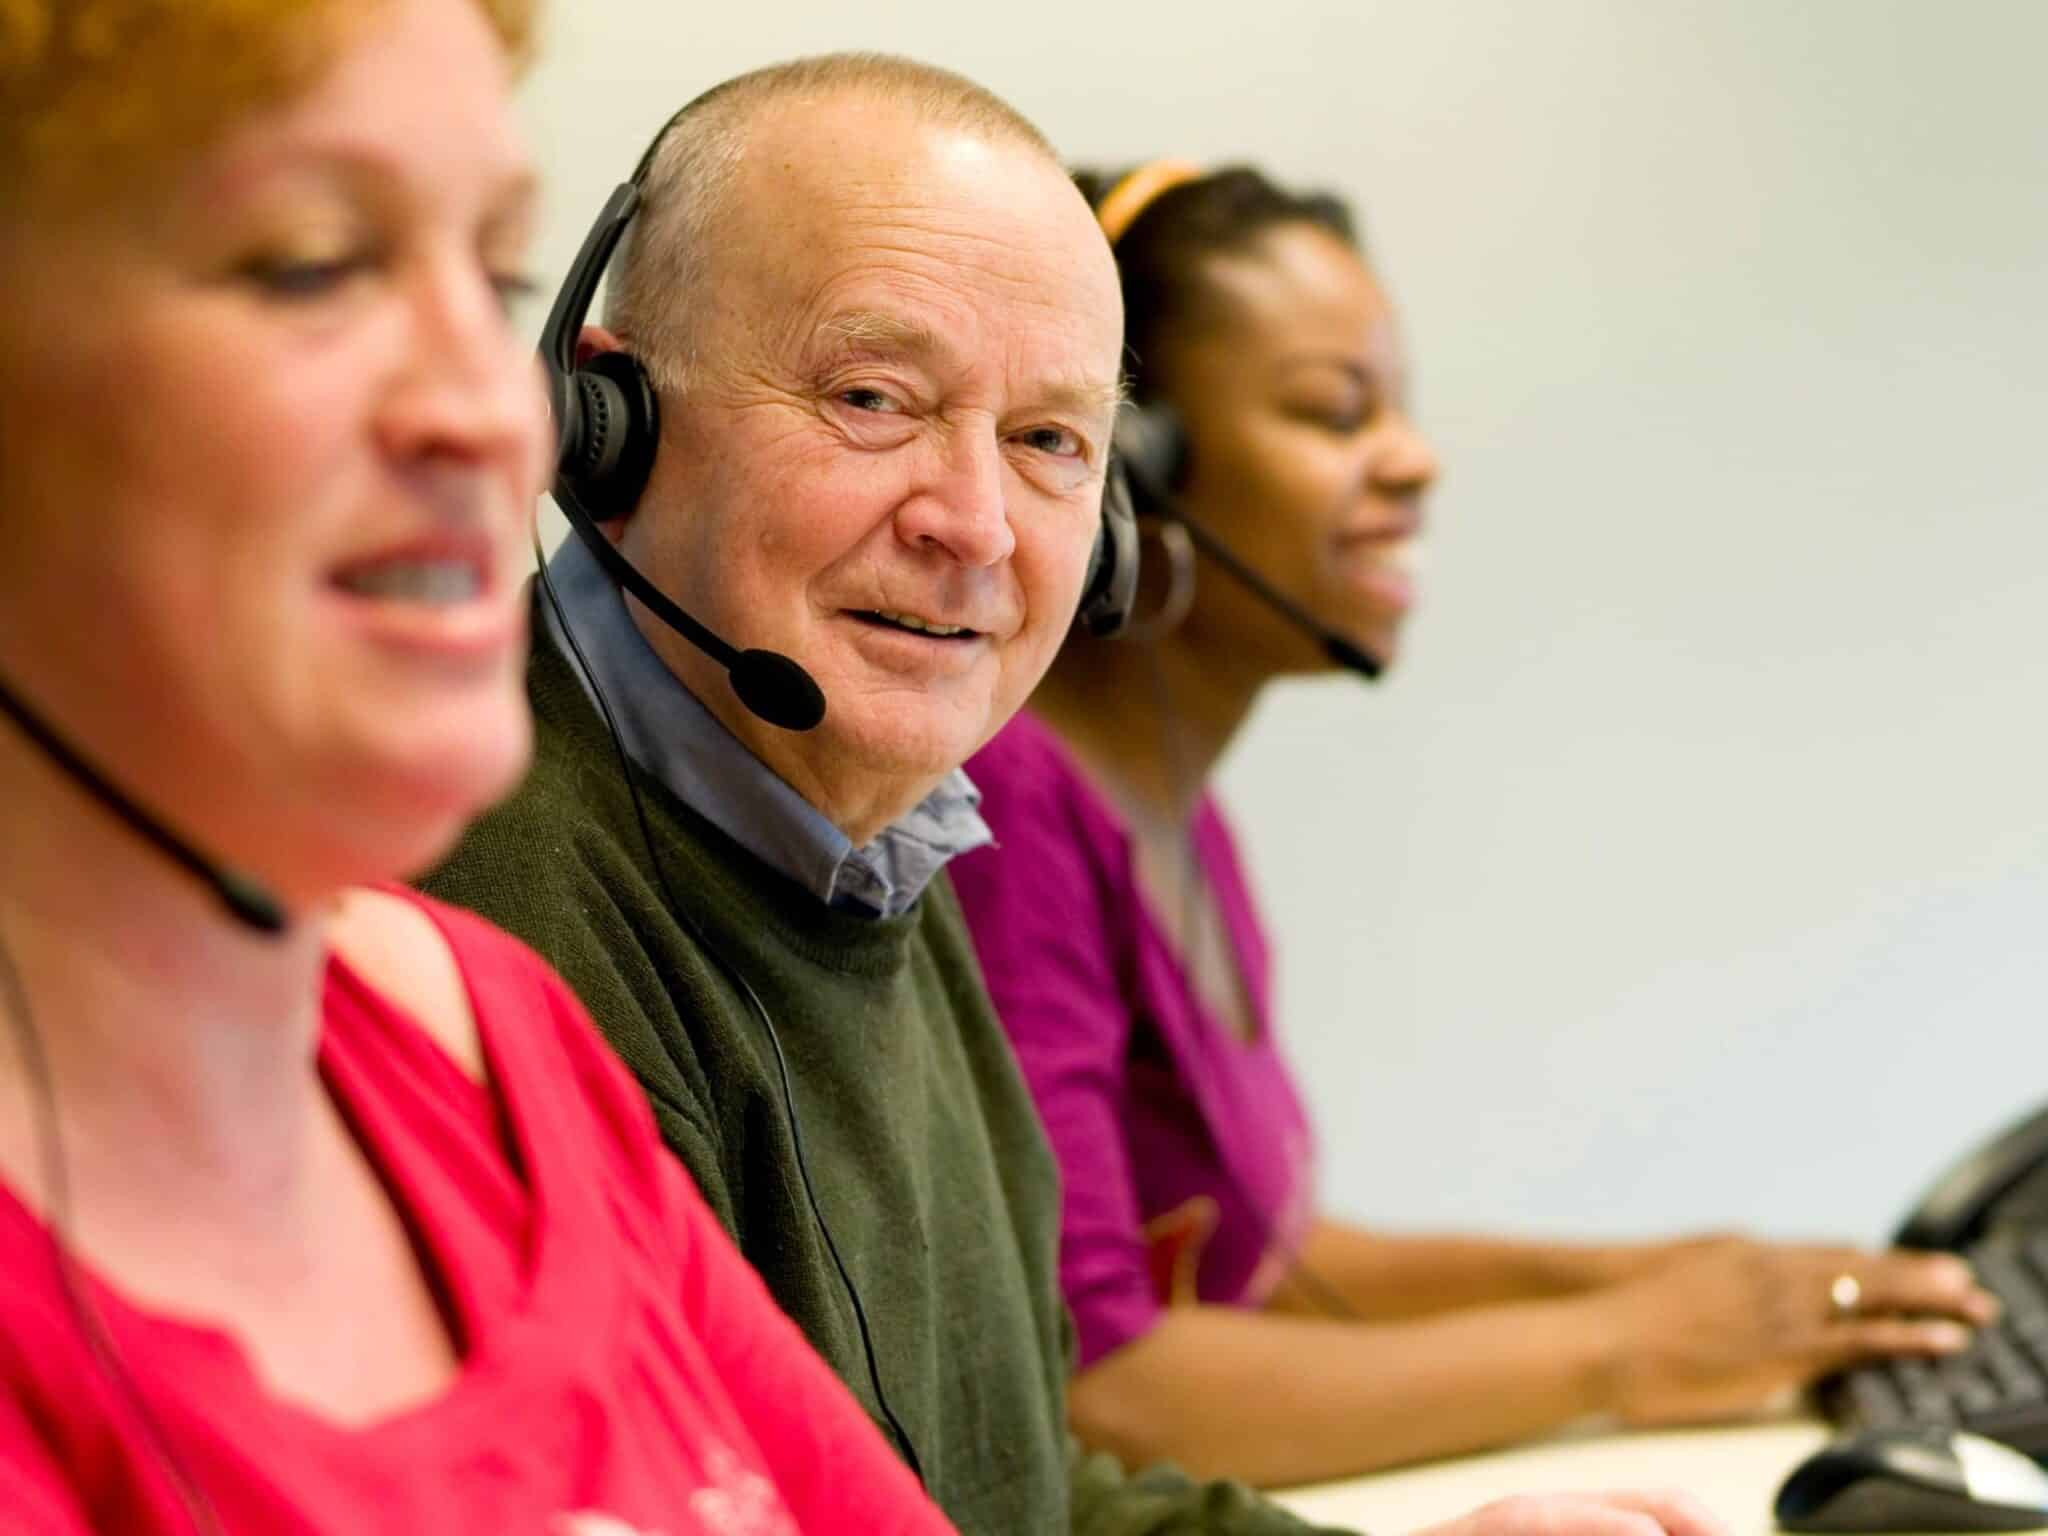 telemarketing employees of different ages and sexes with headsets on